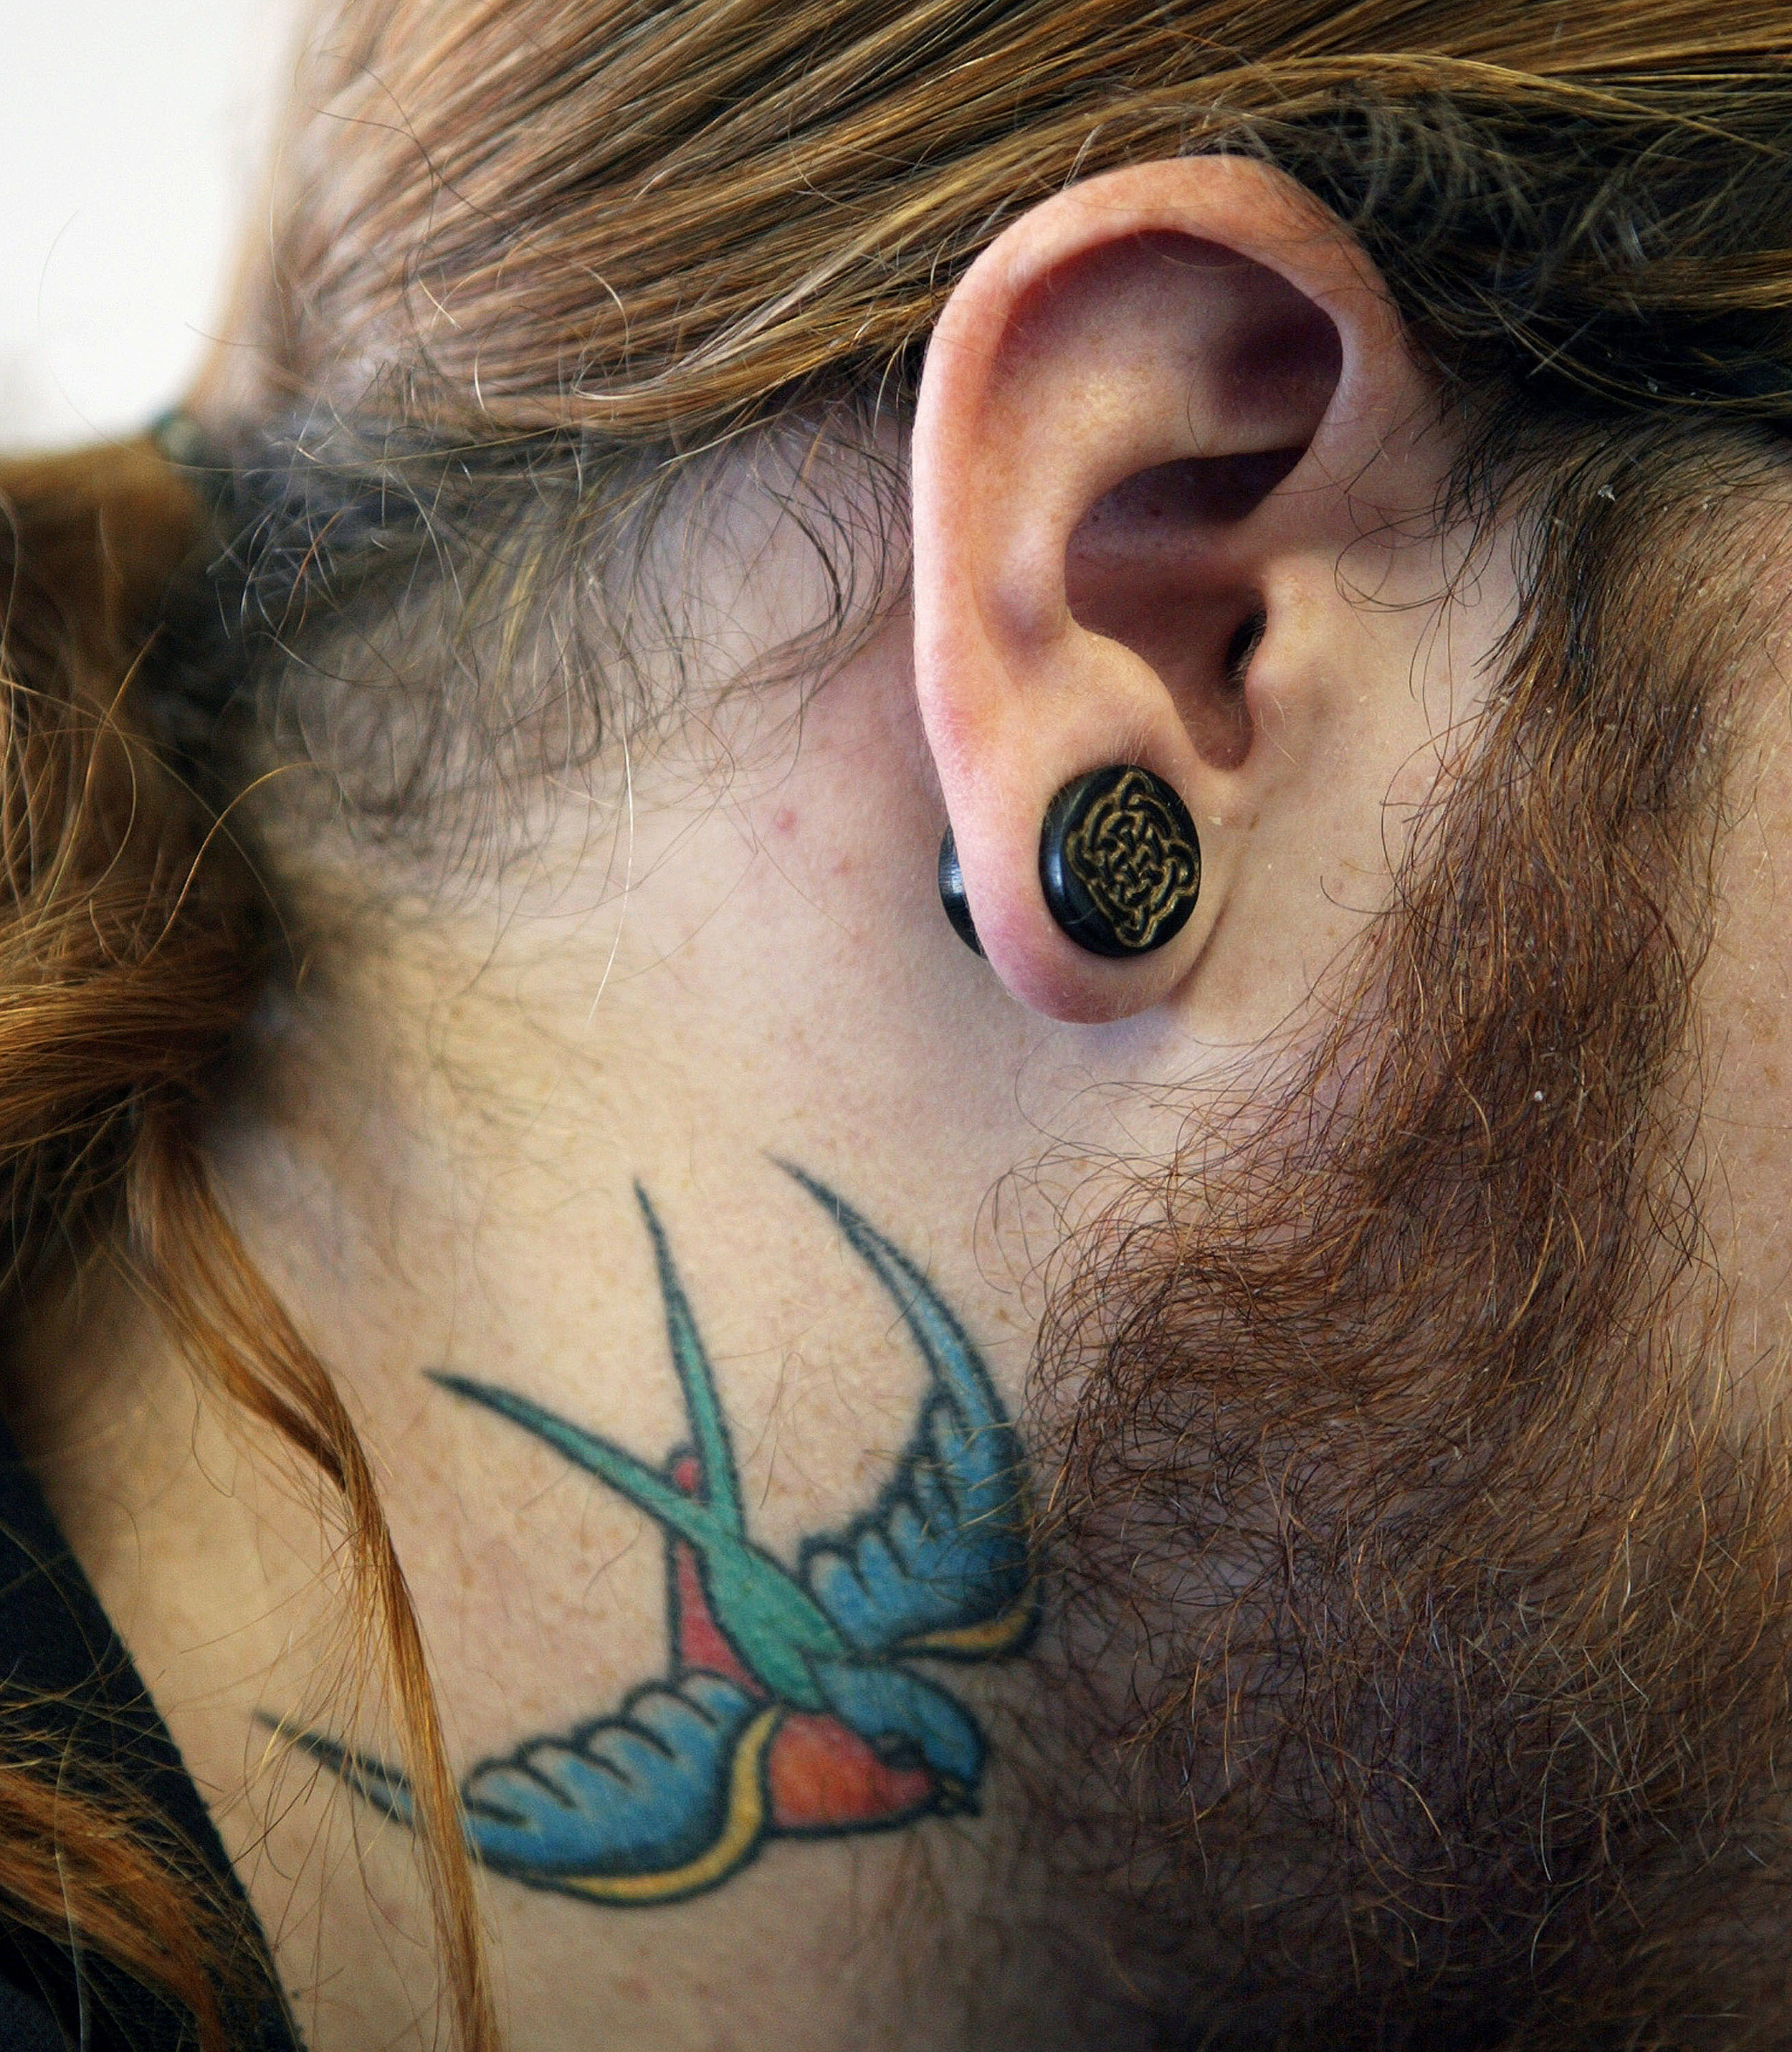 Do-It-Yourself Tattoos Pose Health Risks